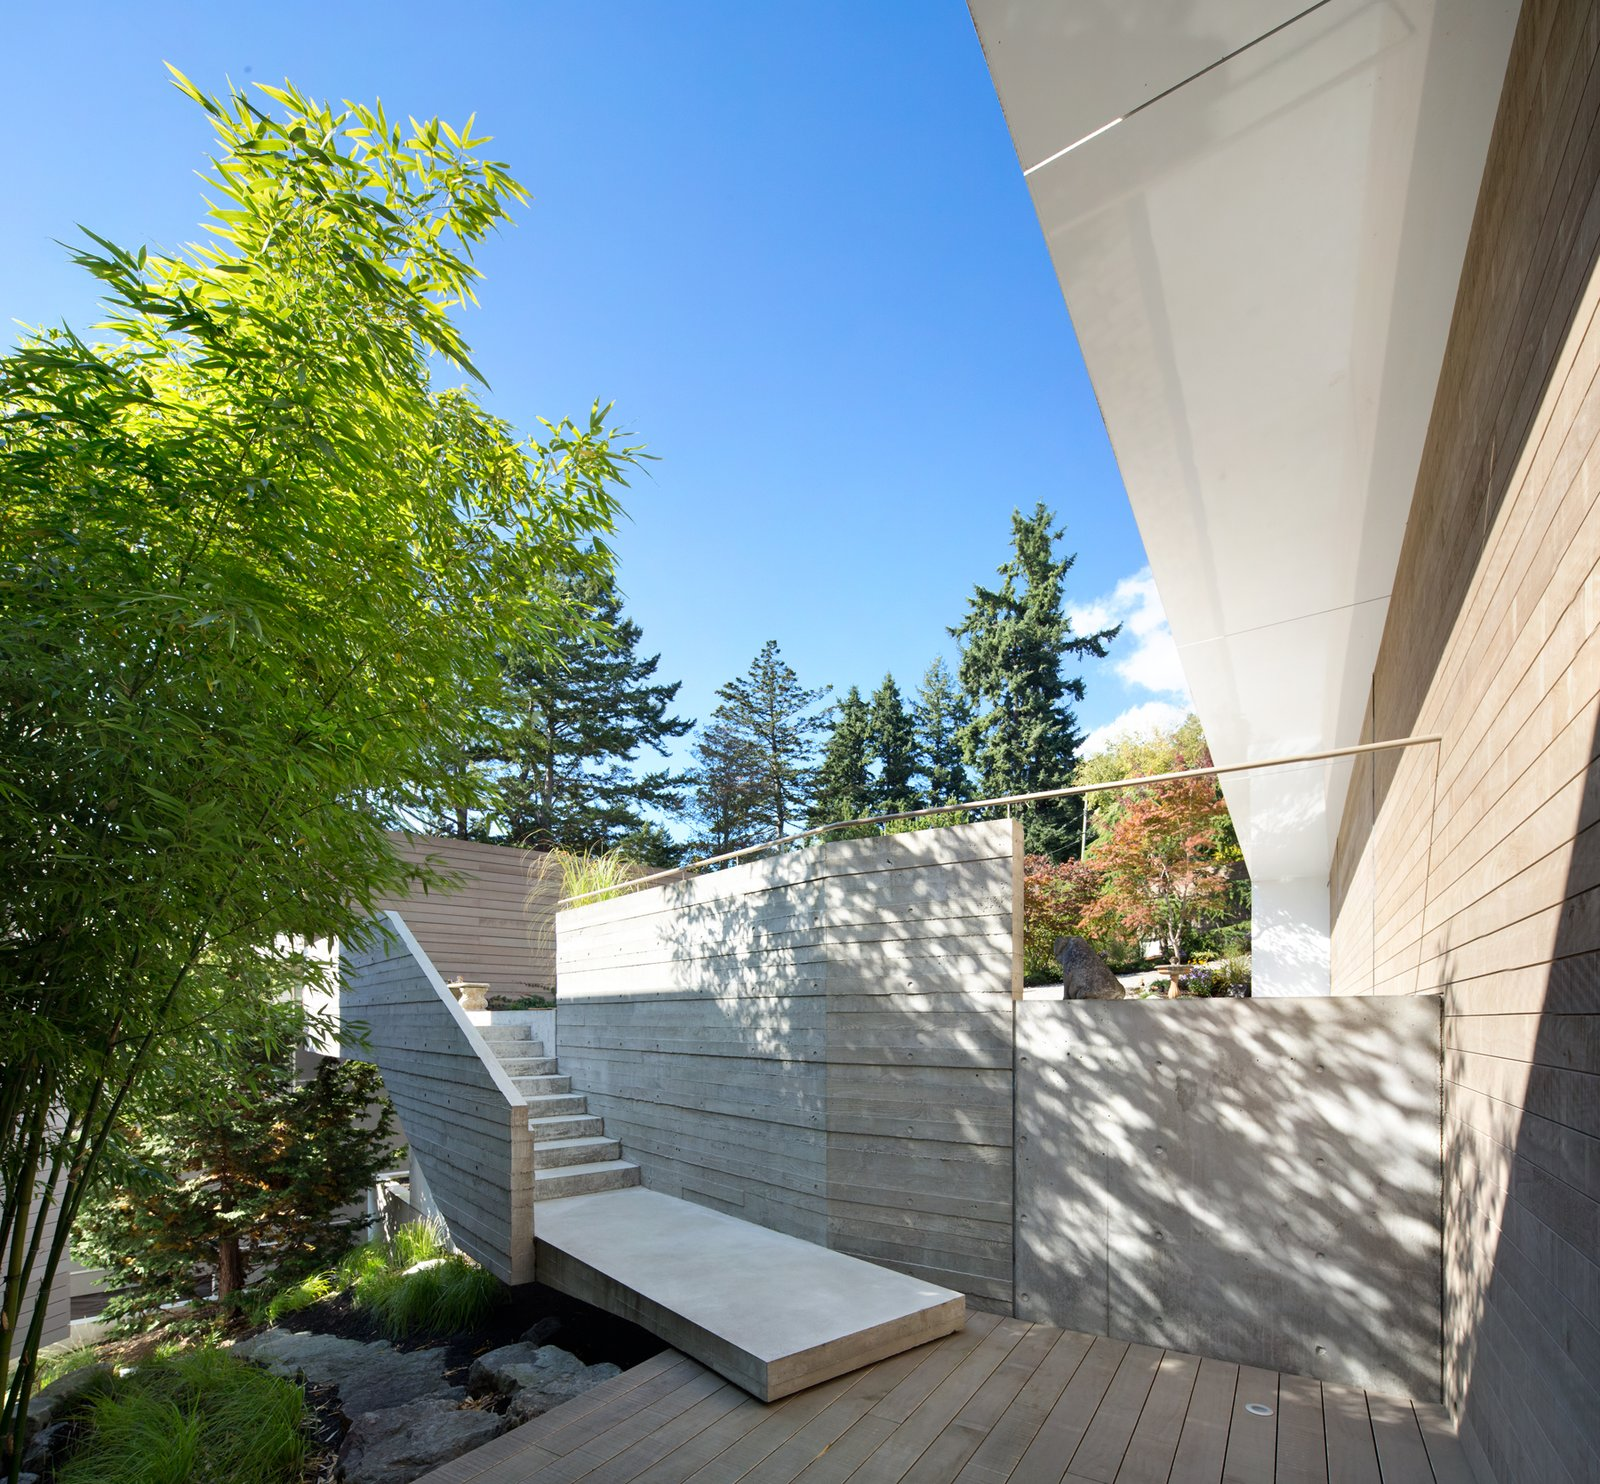 Outdoor, Small, Gardens, Front Yard, Wood, Trees, Walkways, Concrete, Concrete, Shrubs, Hardscapes, and Horizontal  Best Outdoor Wood Gardens Photos from Sunset House